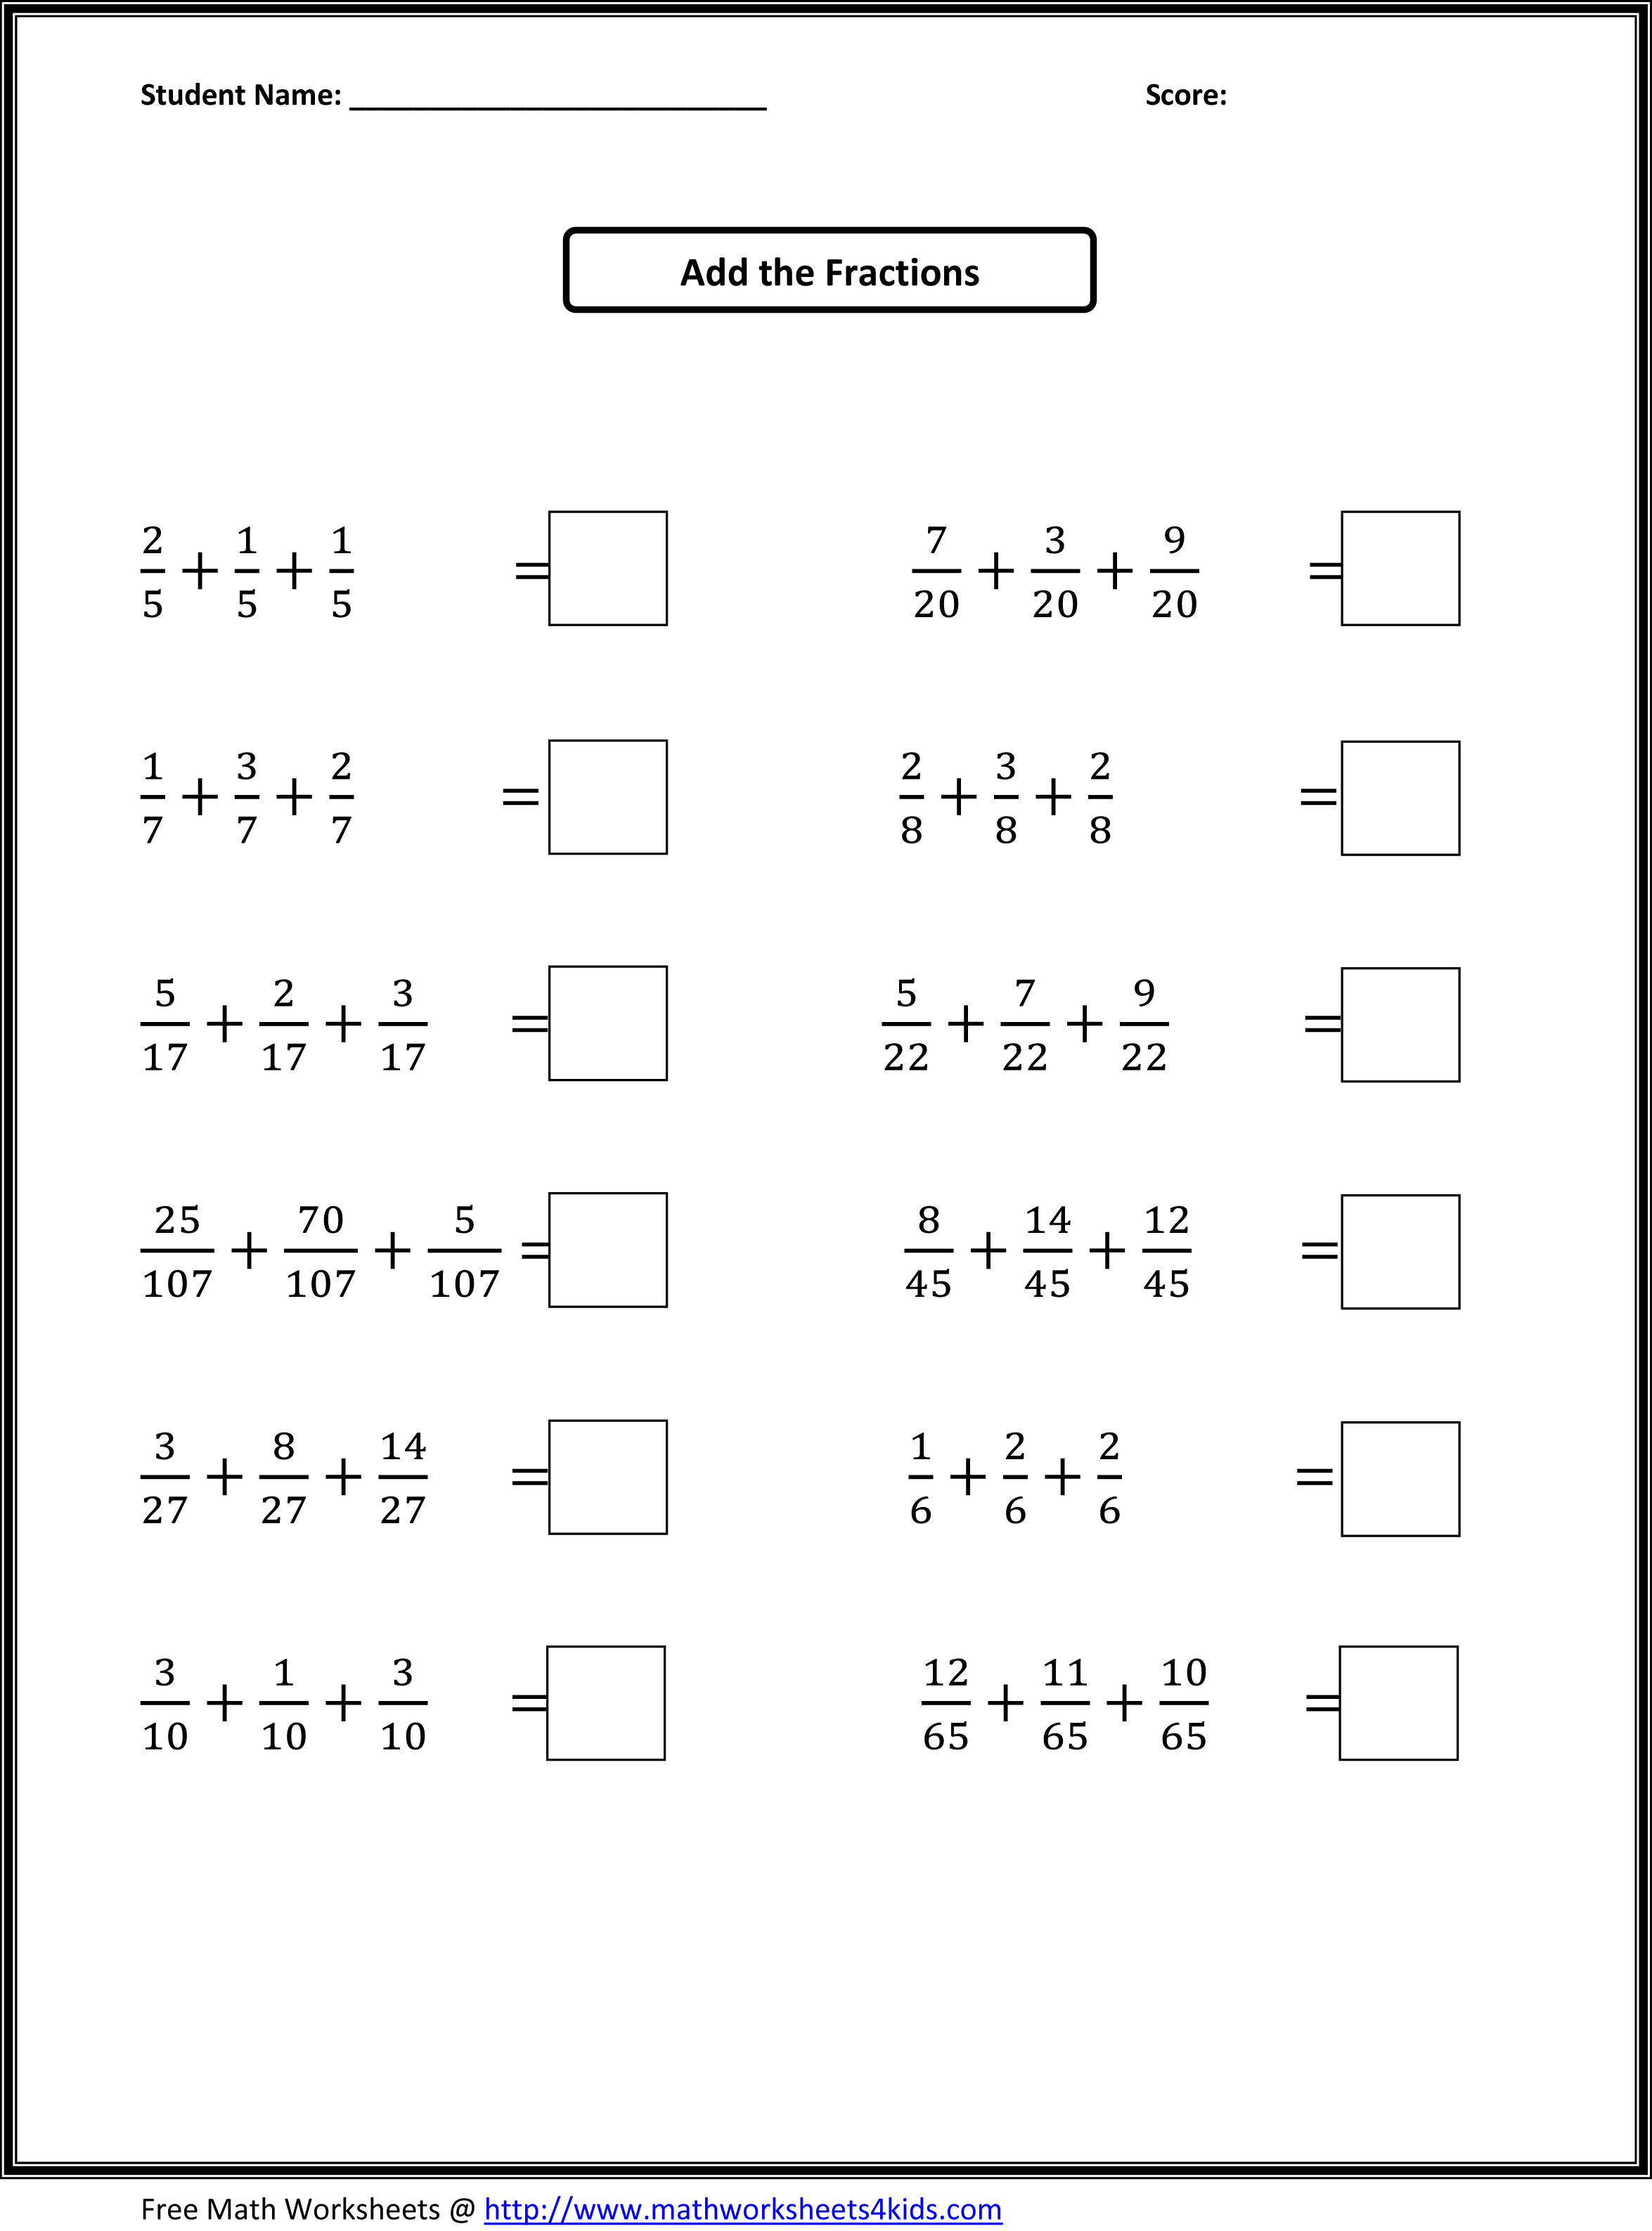 Fraction Worksheets 4th Grade – Fractions for 4th Graders Worksheets